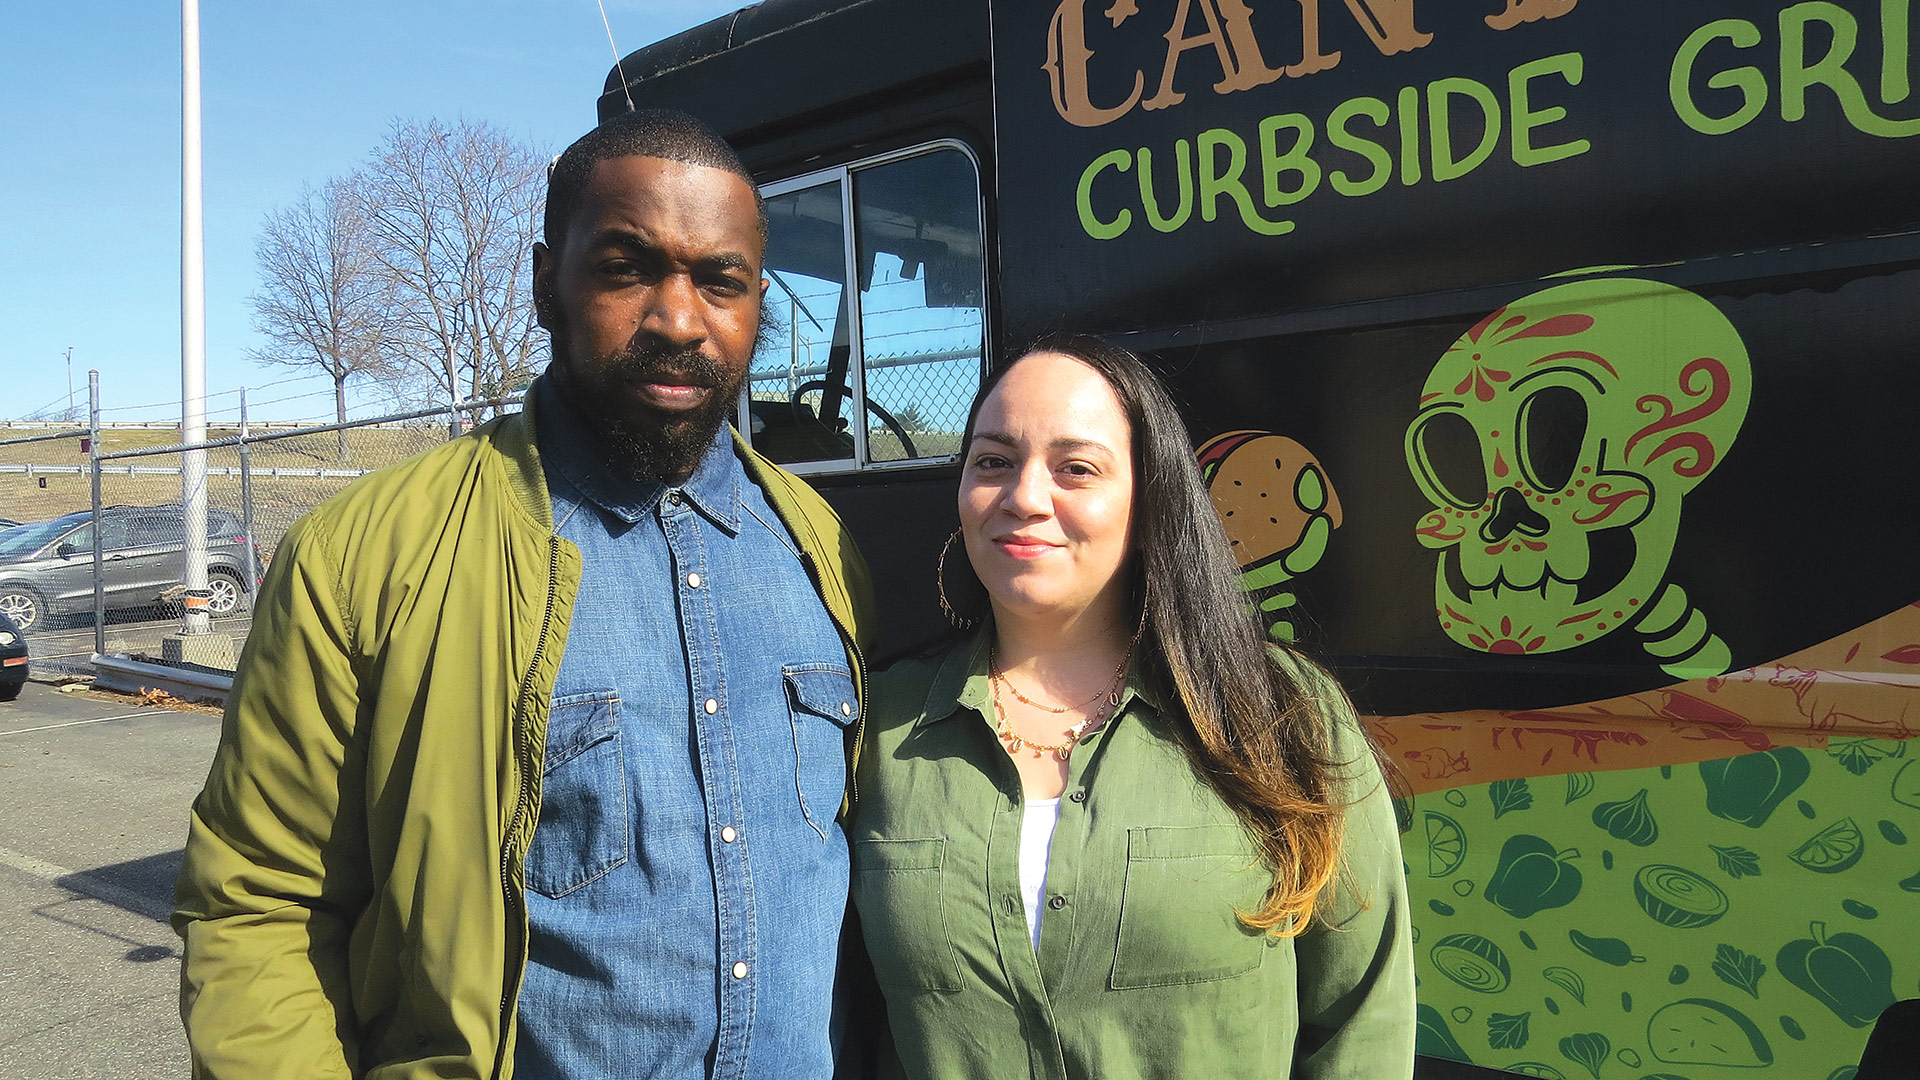 Julie Molianny and Rashad Ali, who launched Cantina Curbside Grill, a food truck featuring Latin fusion items, aspire to open a brick-and-mortar restaurant in the future.